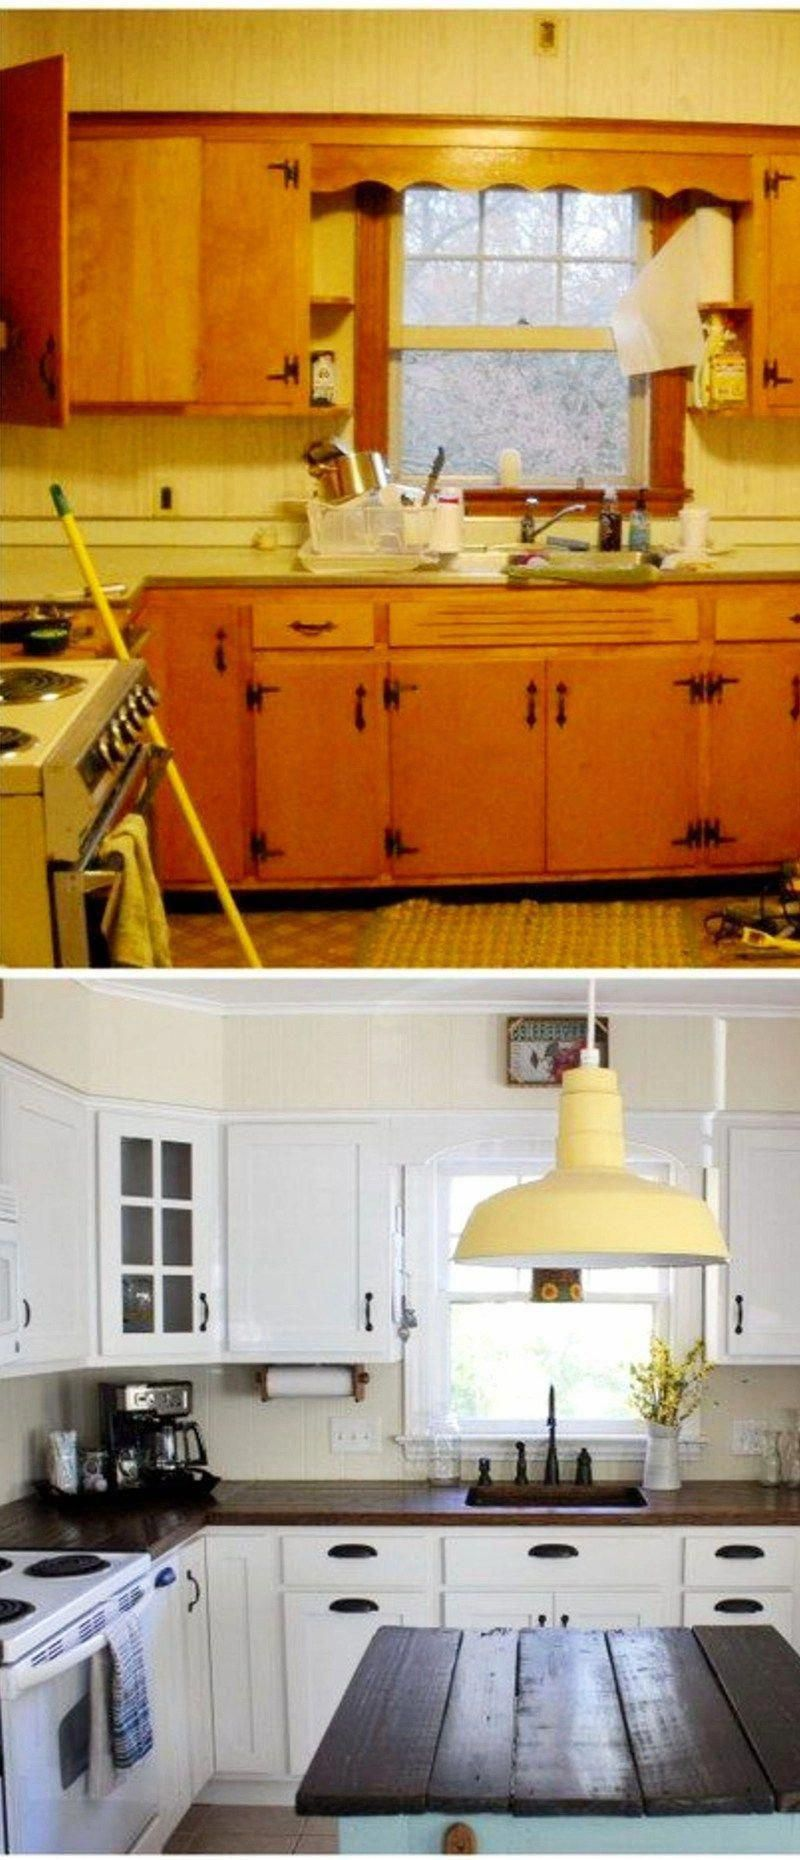 prior to you can begin to figure out whether kitchen remodeling